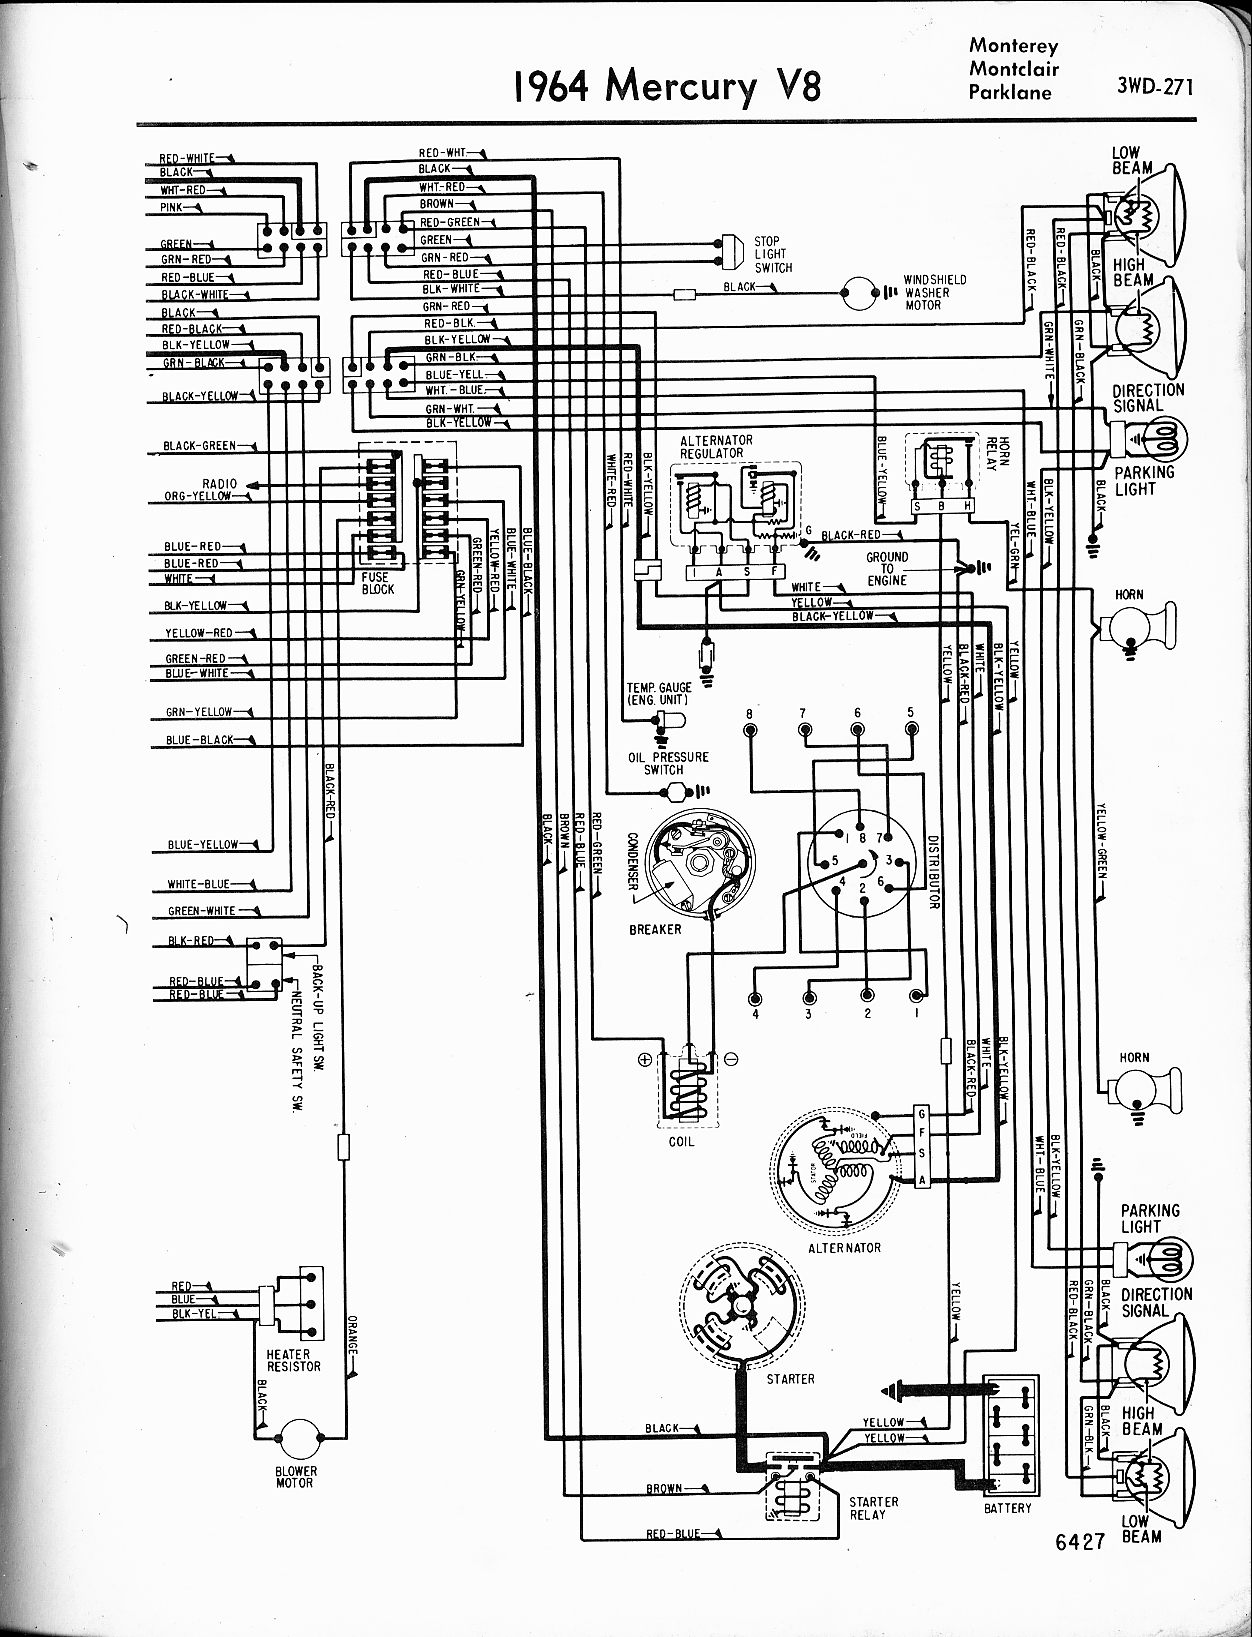 1964 galaxie 500 xl wiring diagram wiring diagram 1955 Ford Thunderbird Wiring Diagram 1967 galaxie engine wiring wiring diagram blog65 ford galaxie wiring diagram schematic 14 nkl capecoral 1967